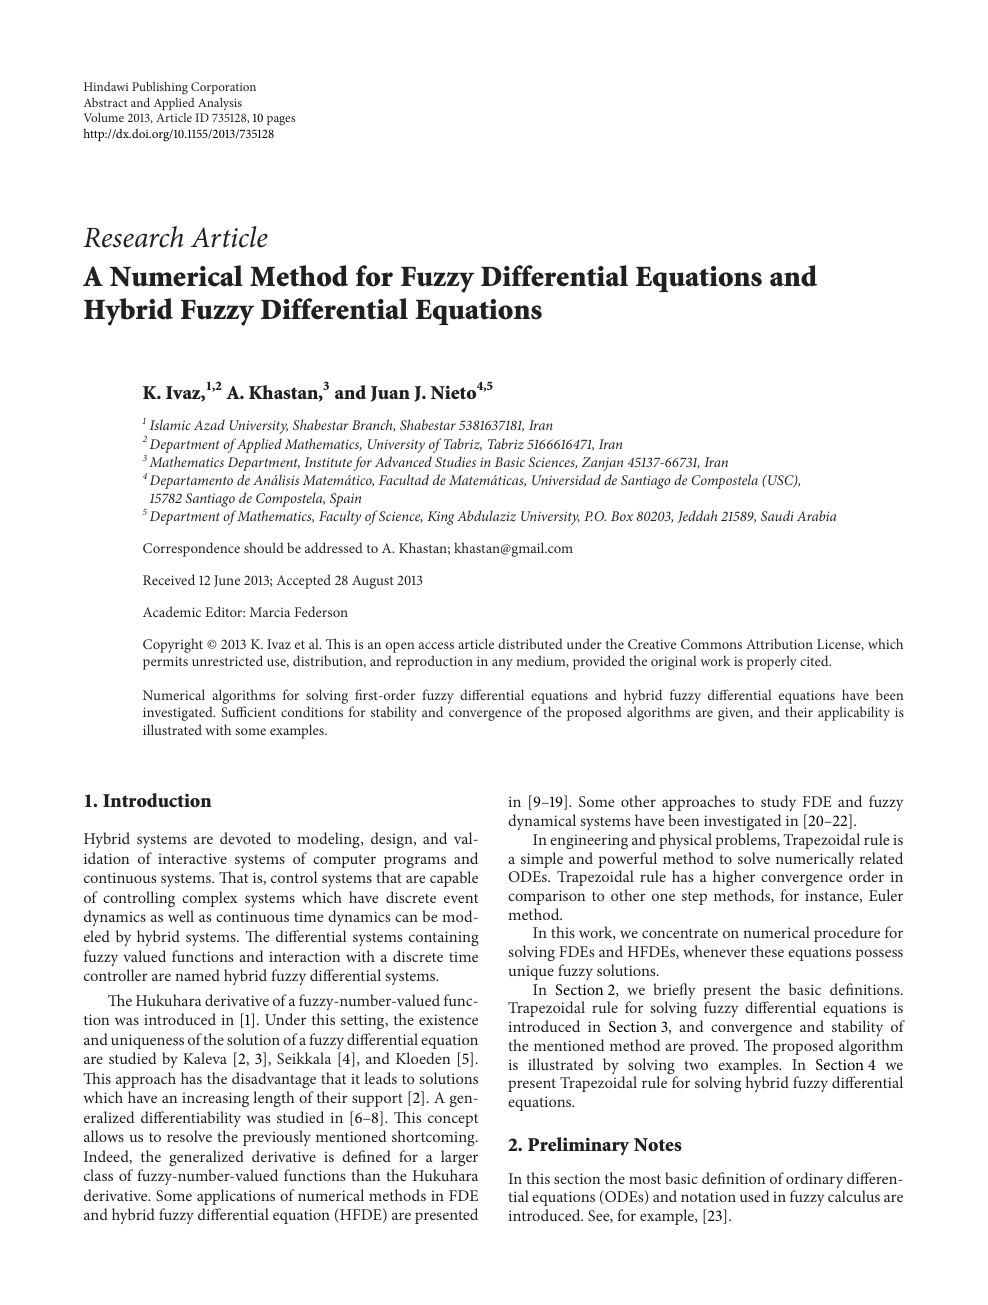 A Numerical Method for Fuzzy Differential Equations and